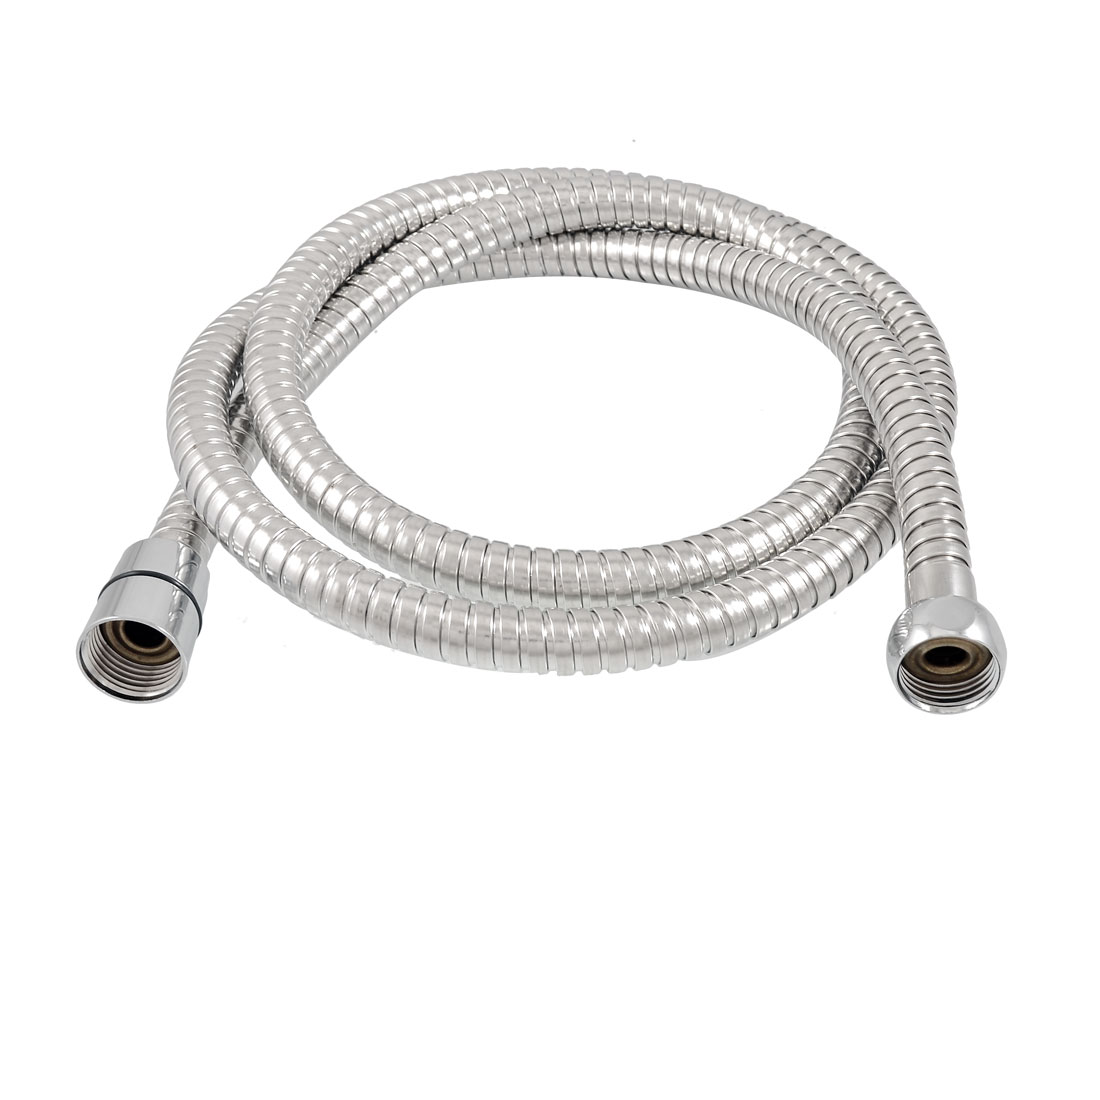 Silver tone Stainless Steel Flexible Handheld Shower Hose 1.58M